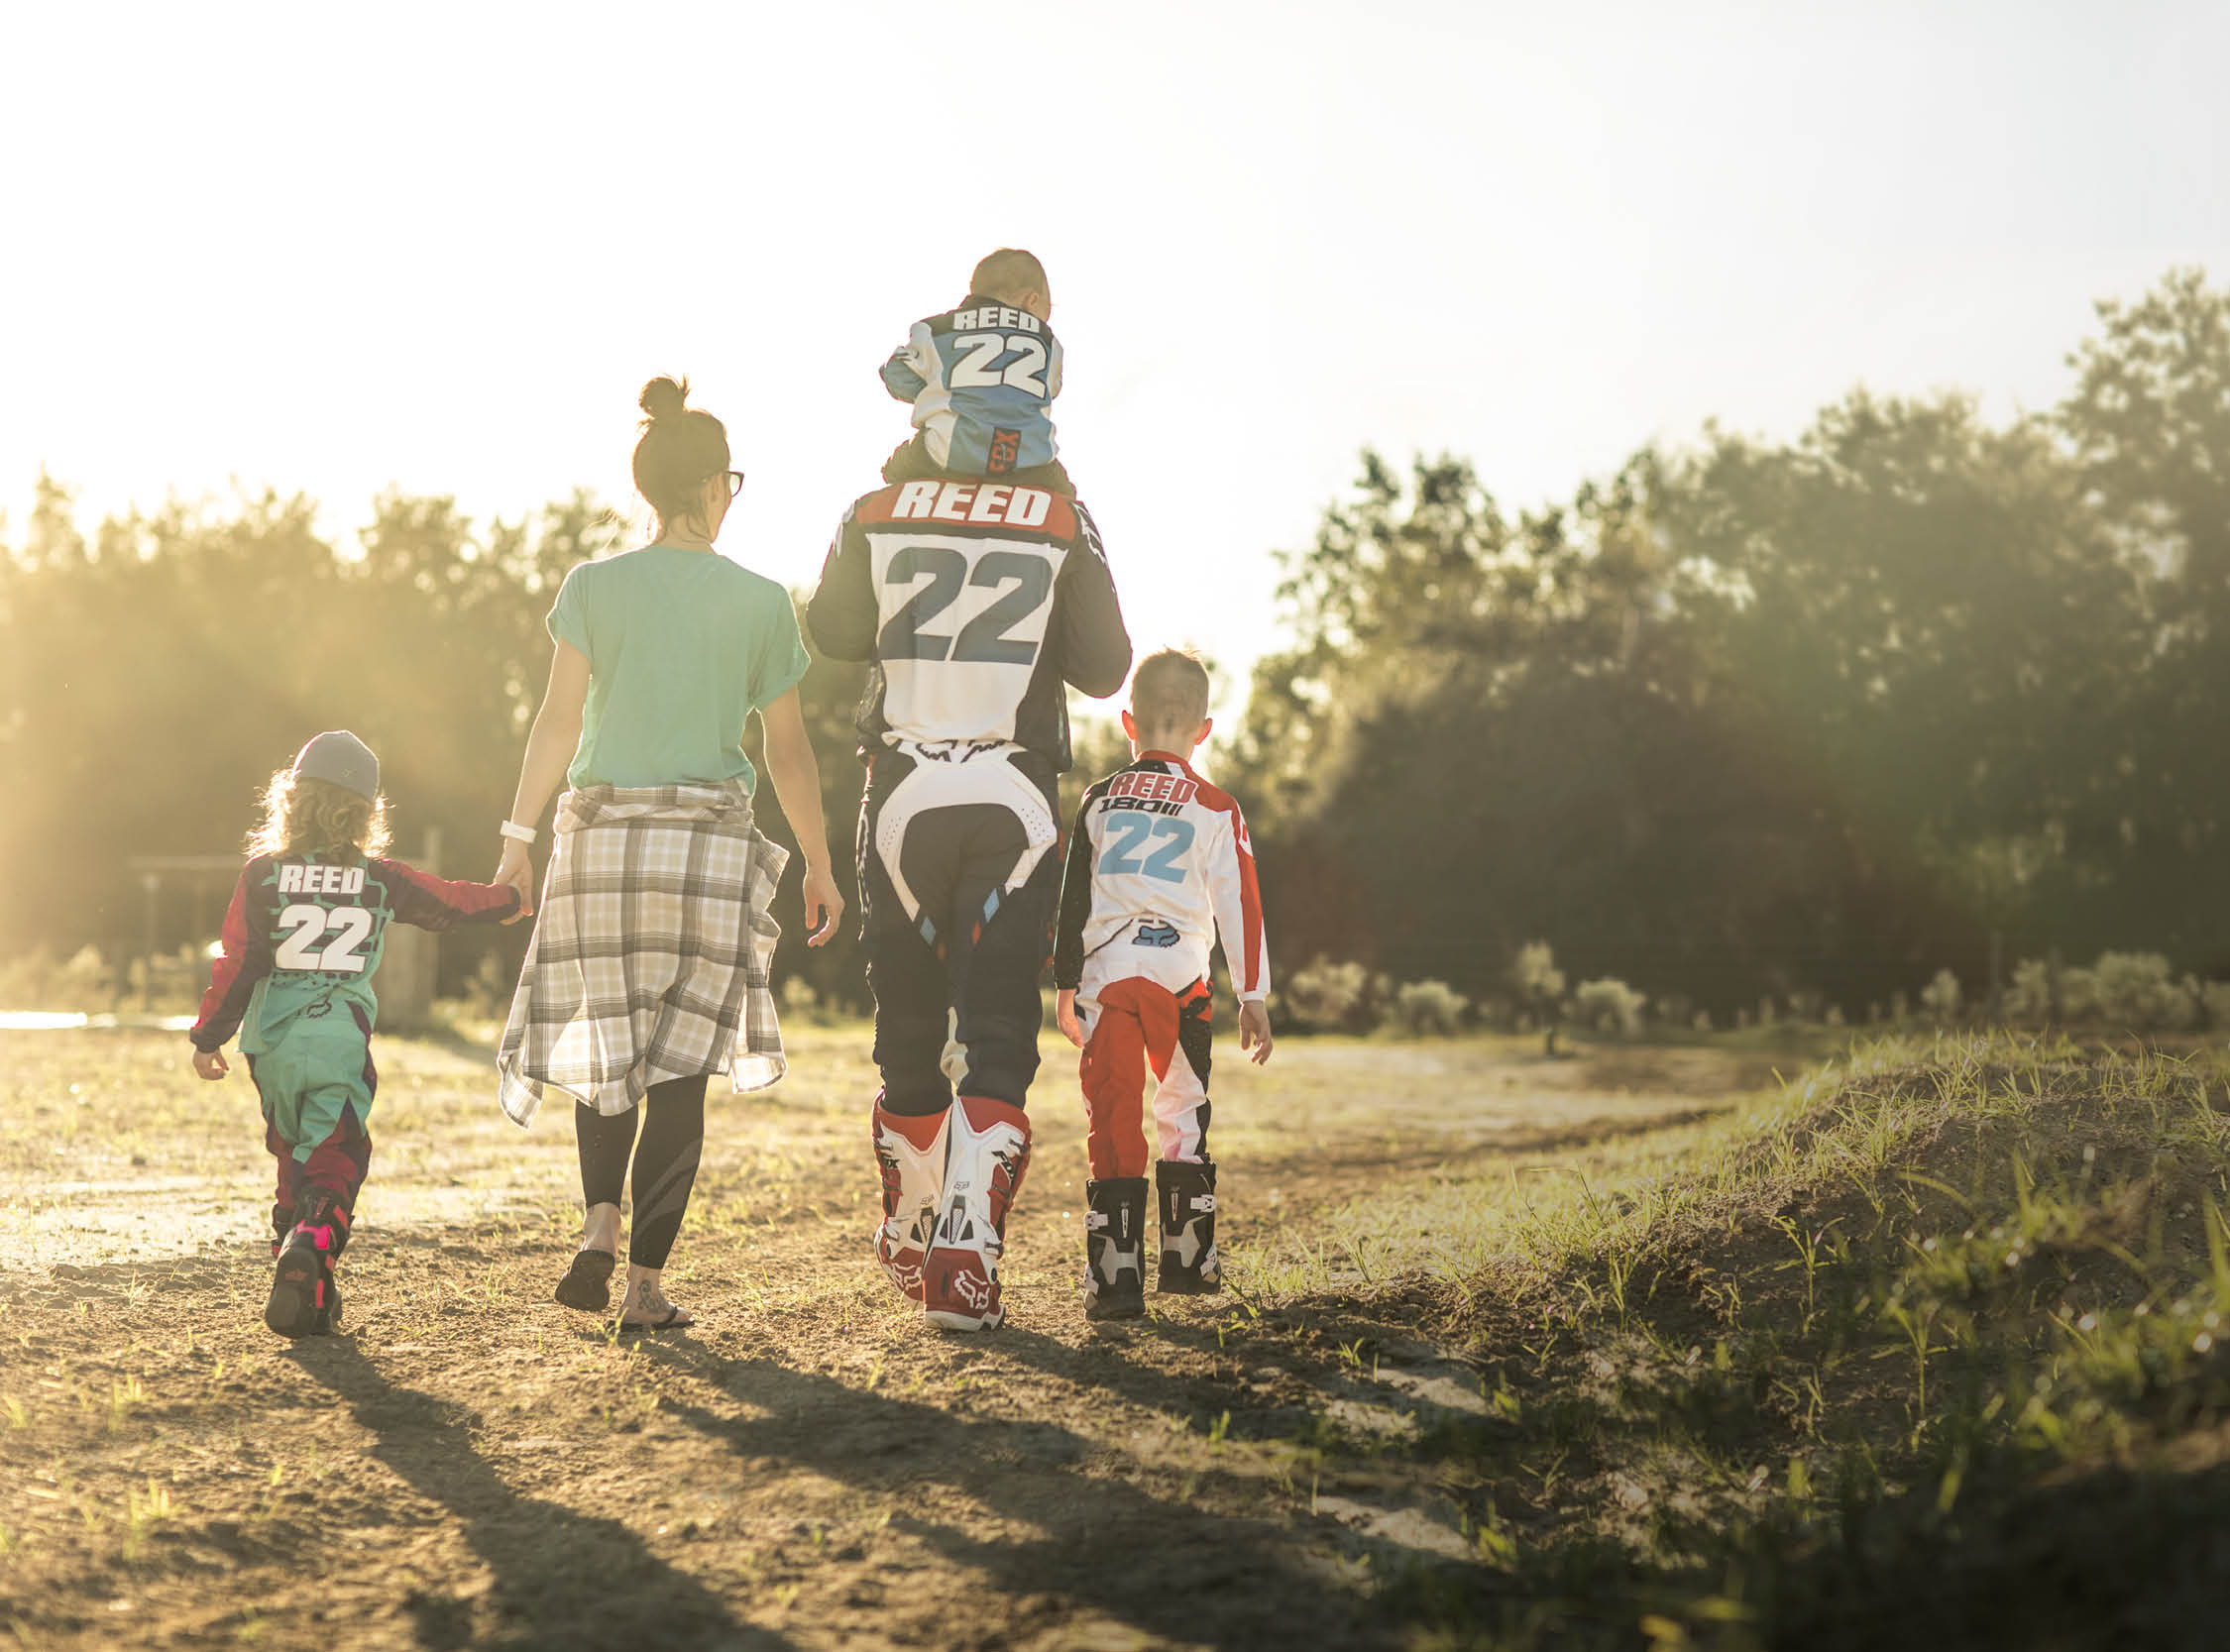 VIDEO: THE REEDS | ONE FAMILY, ONE BRAND|Motocross Action ...